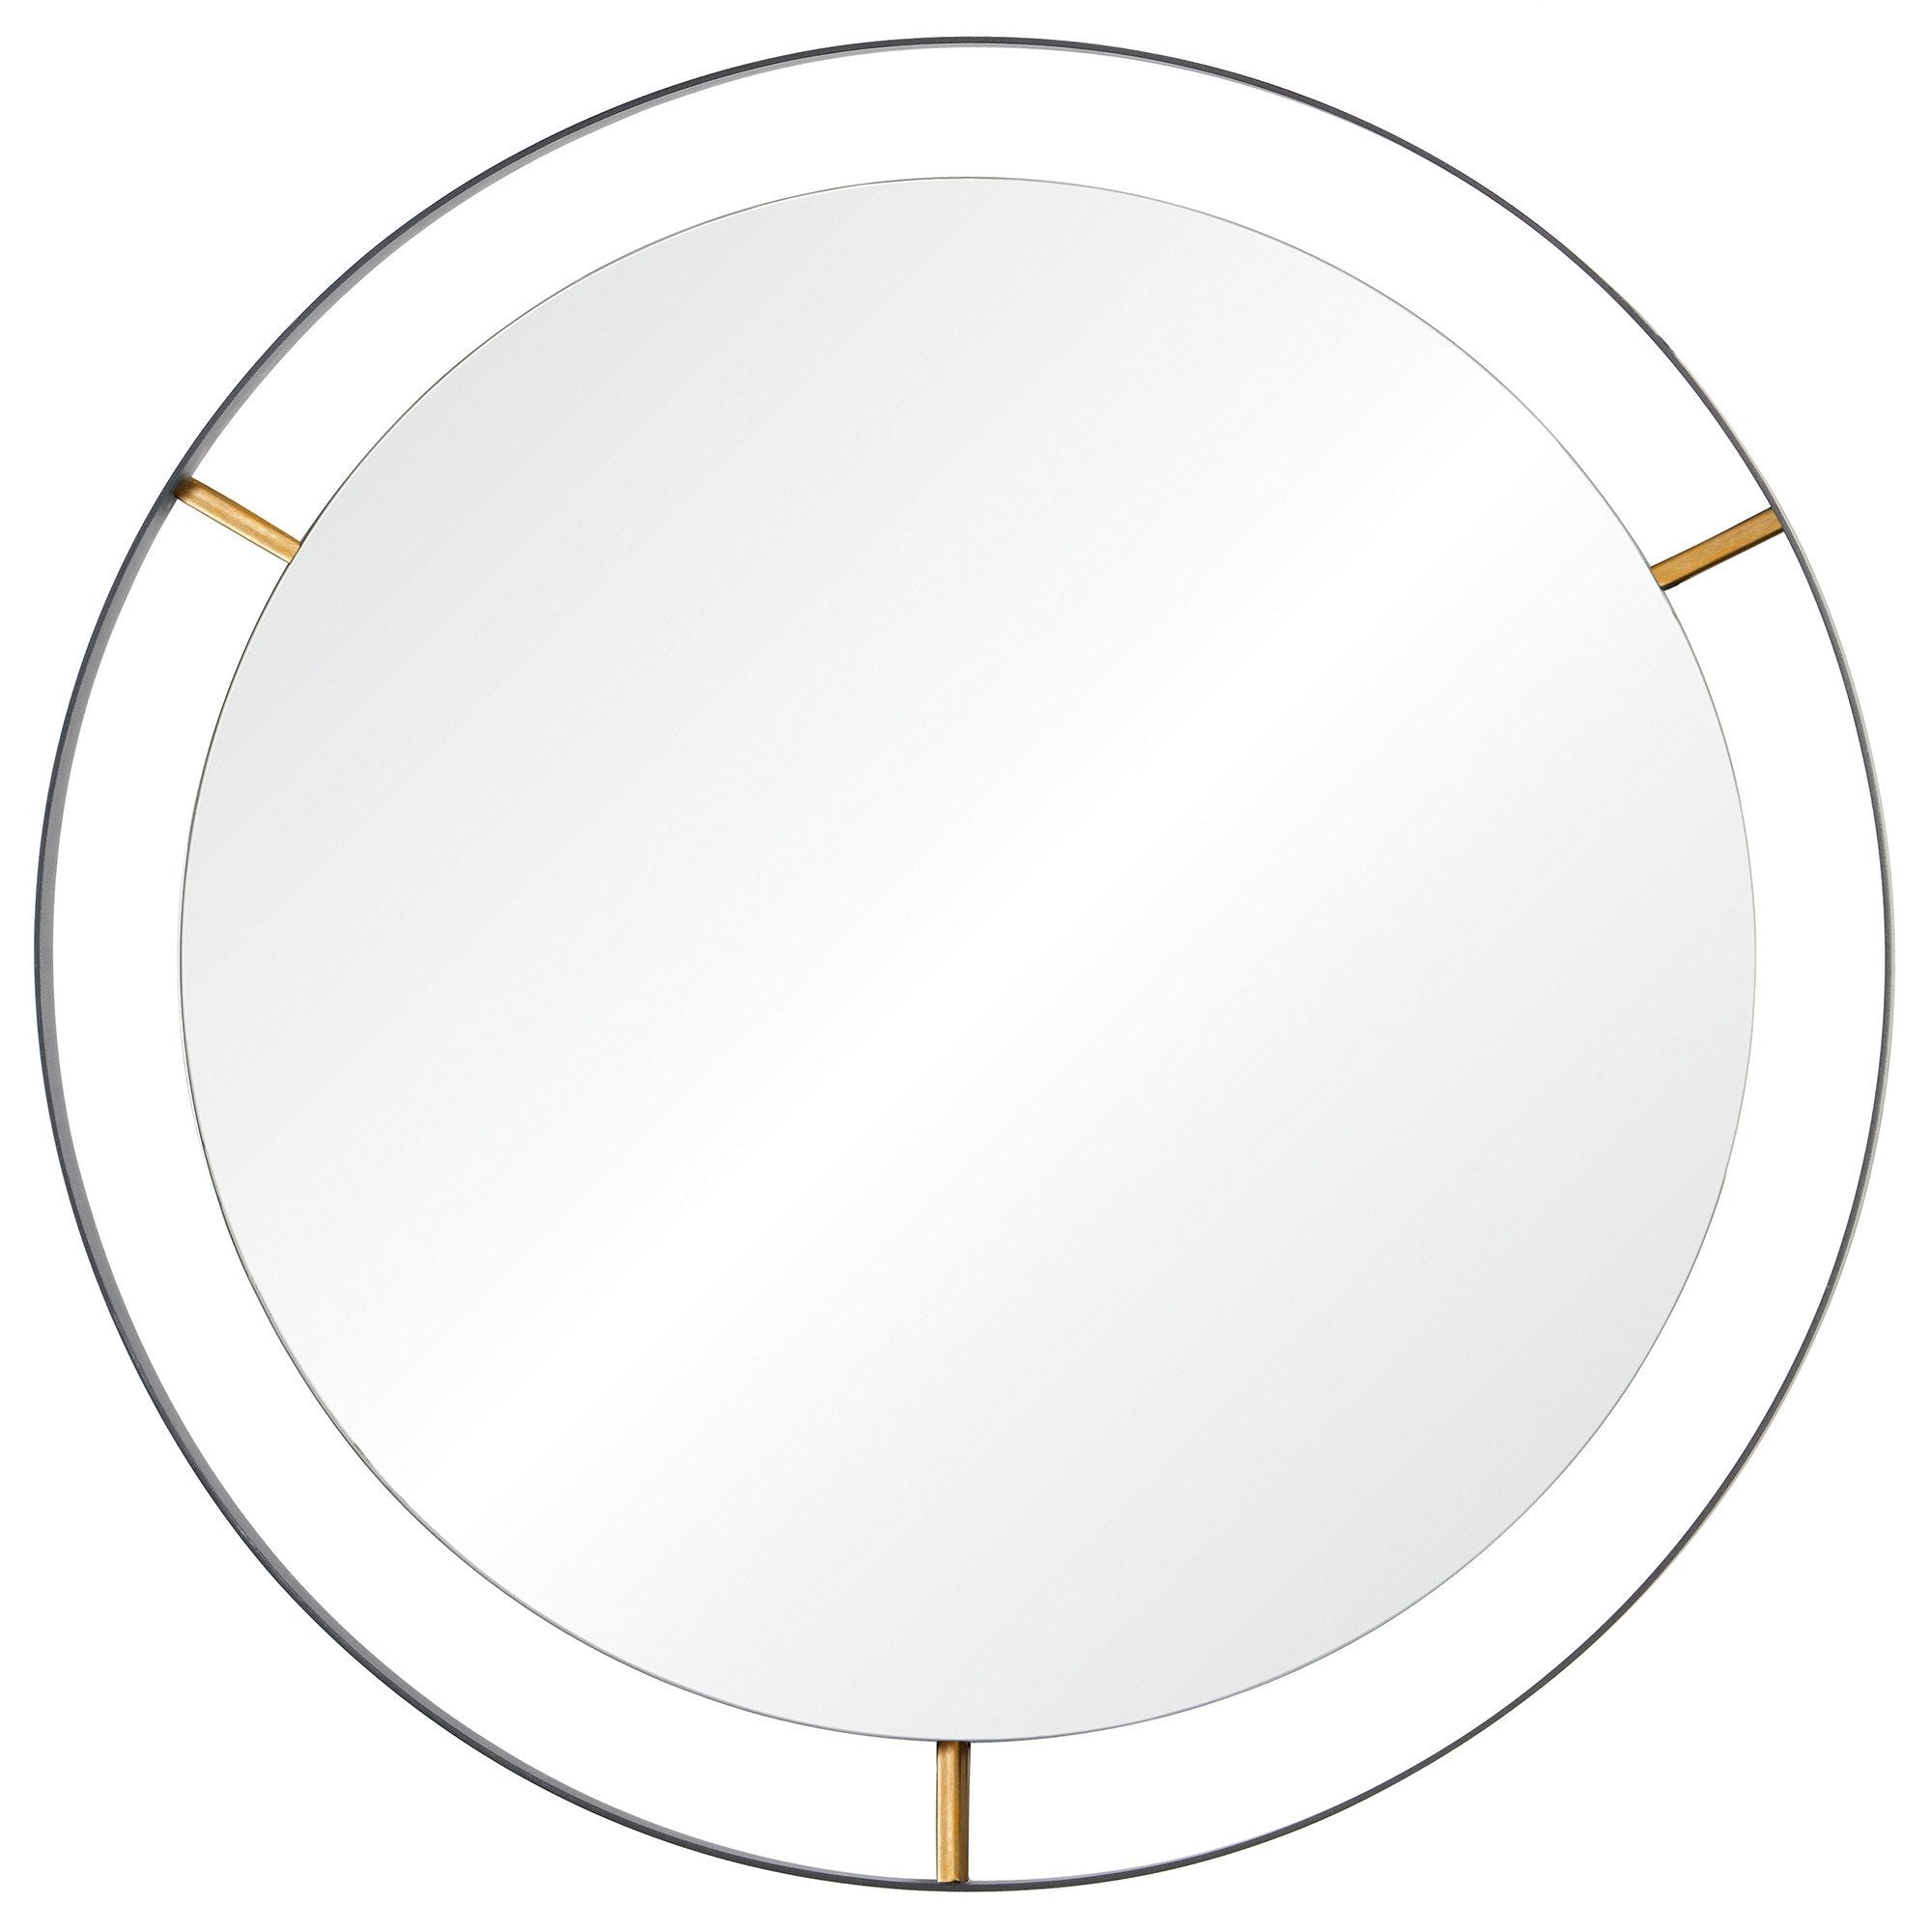 Framed 610000 20-In Round Wall Mirror - Black w/ Antique Gold